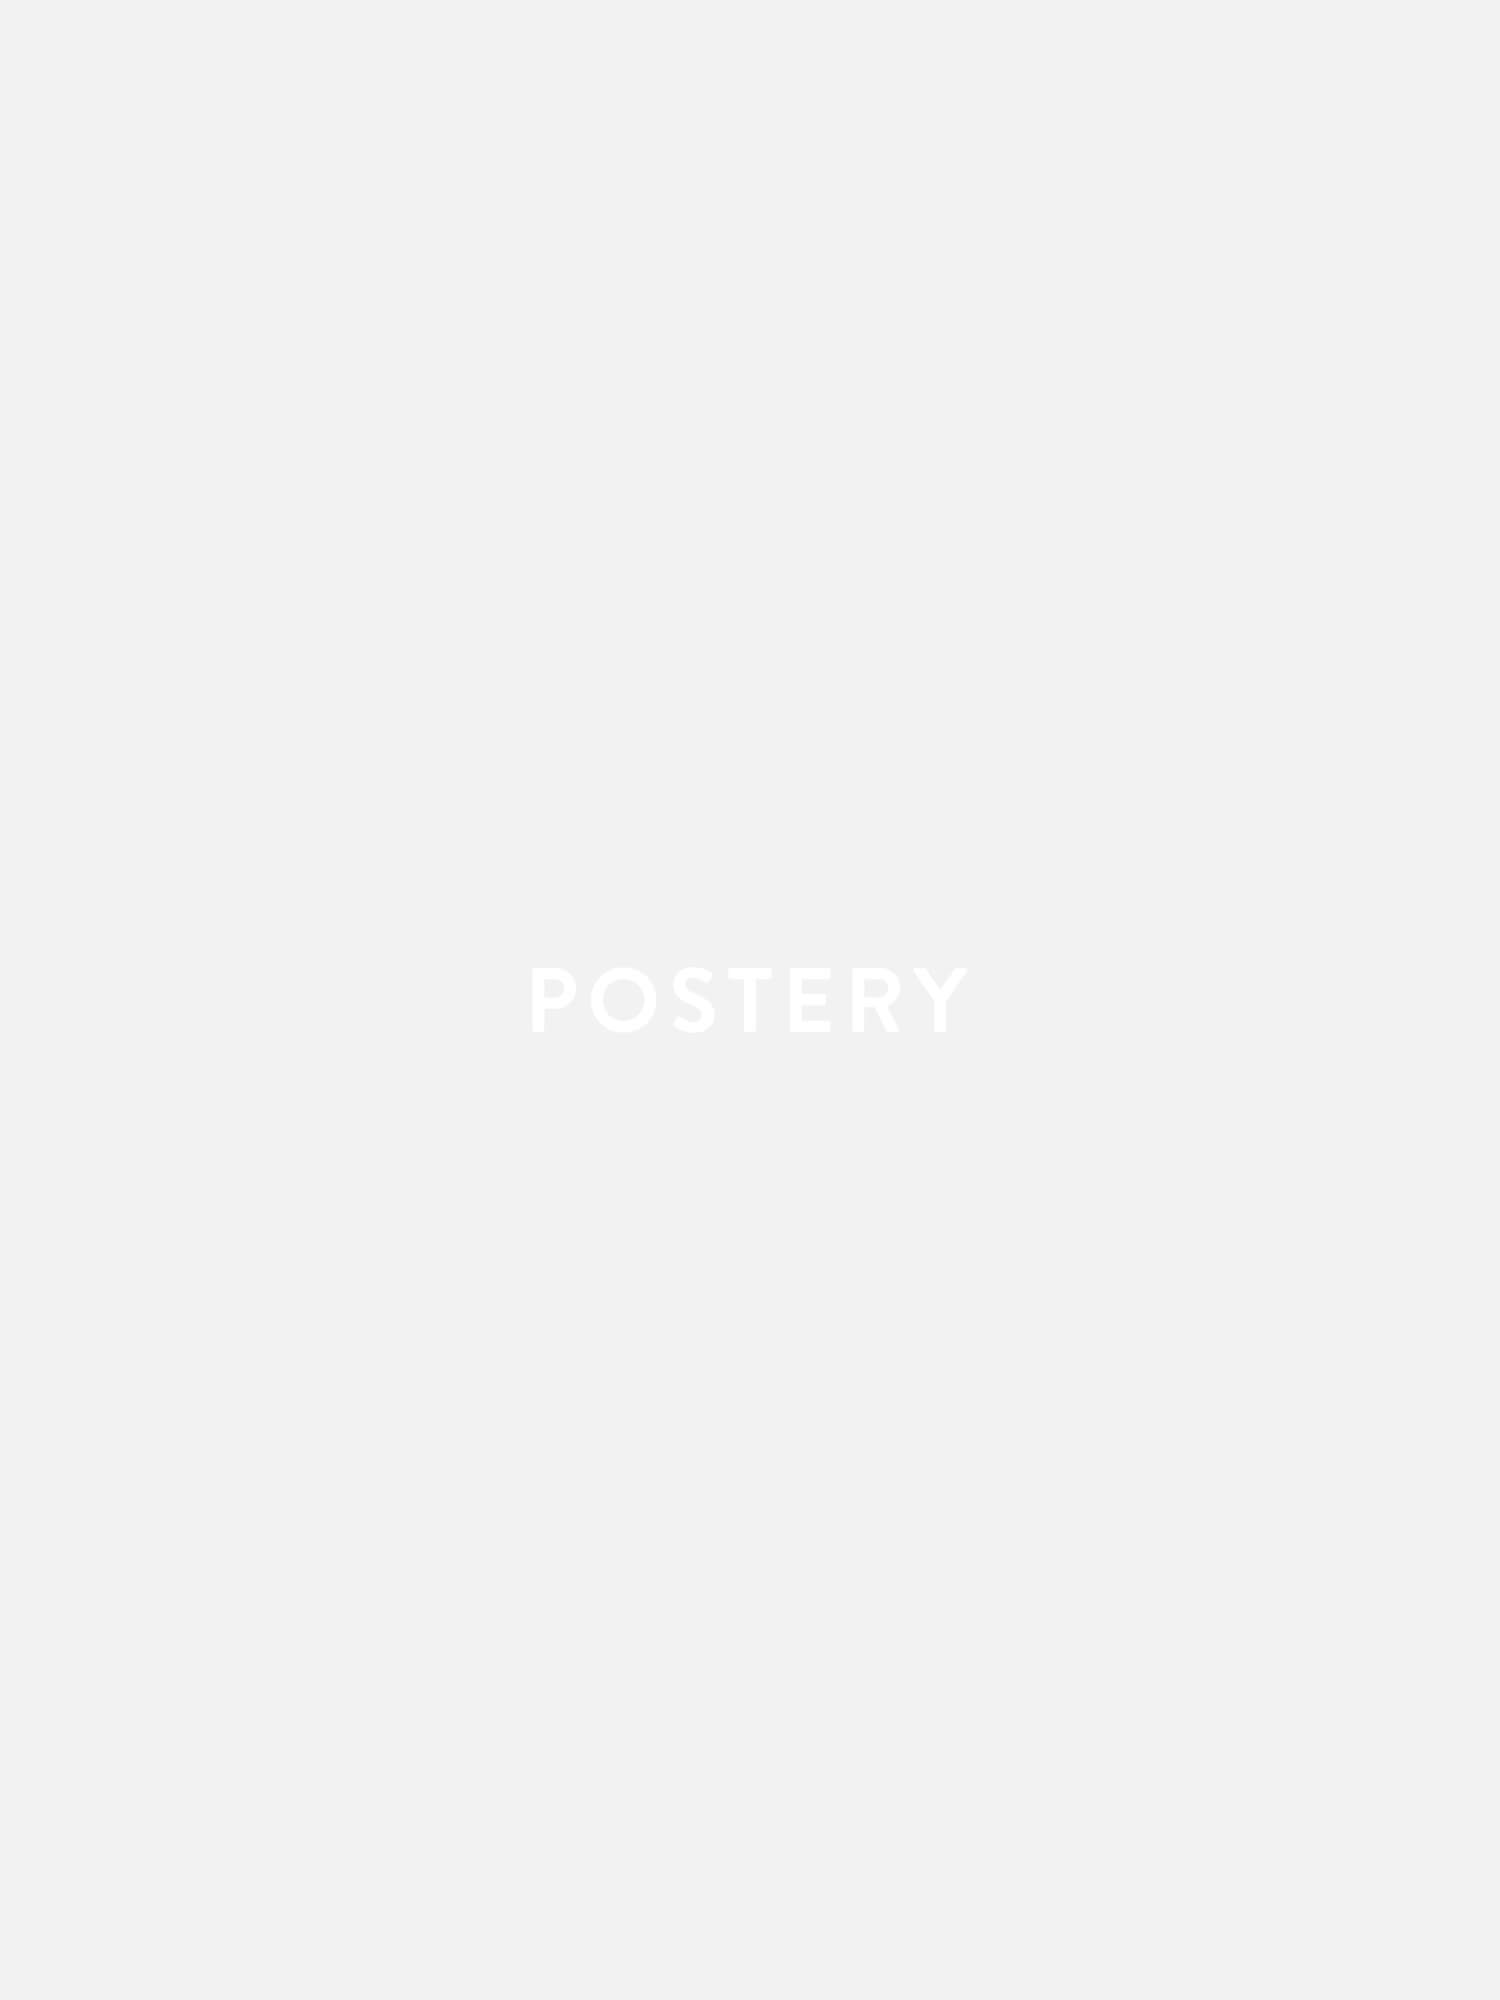 Marigold by William Morris Poster